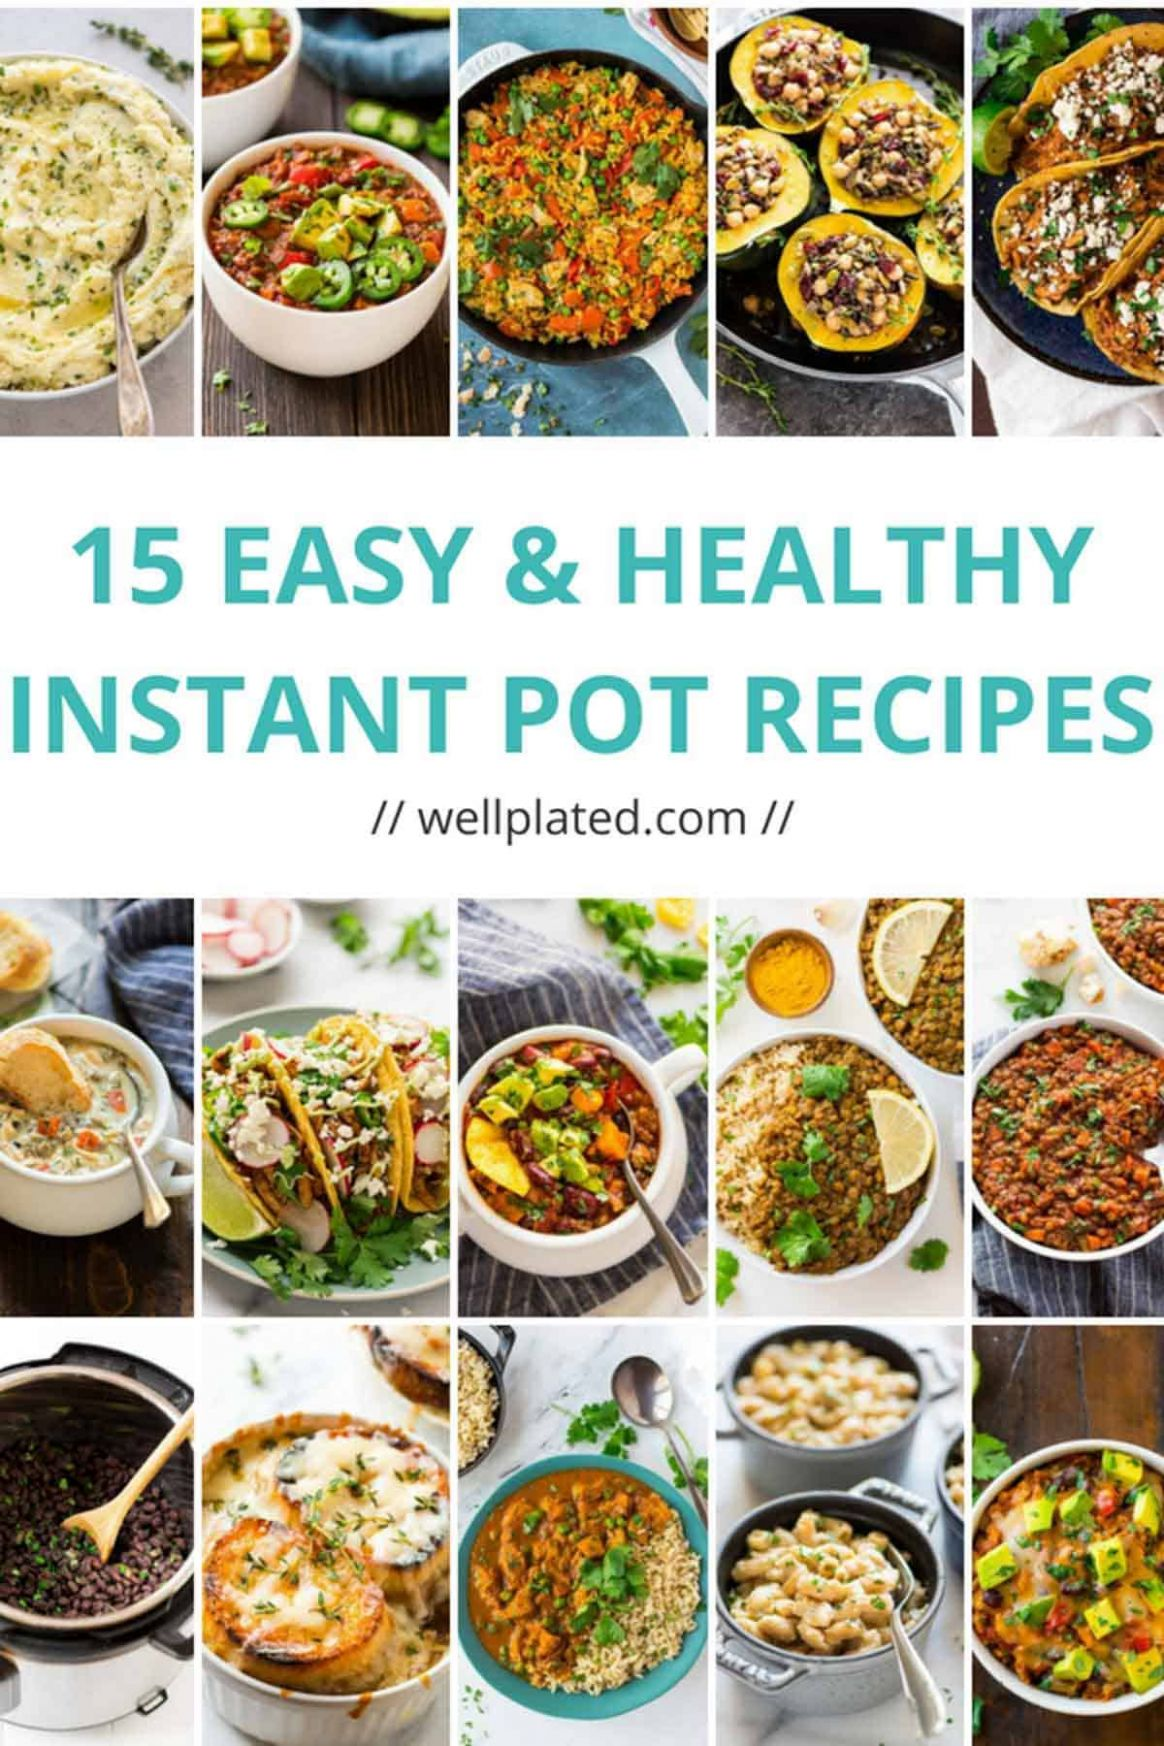 8 Healthy Instant Pot Recipes That Anyone Can Make - Healthy Recipes Instant Pot